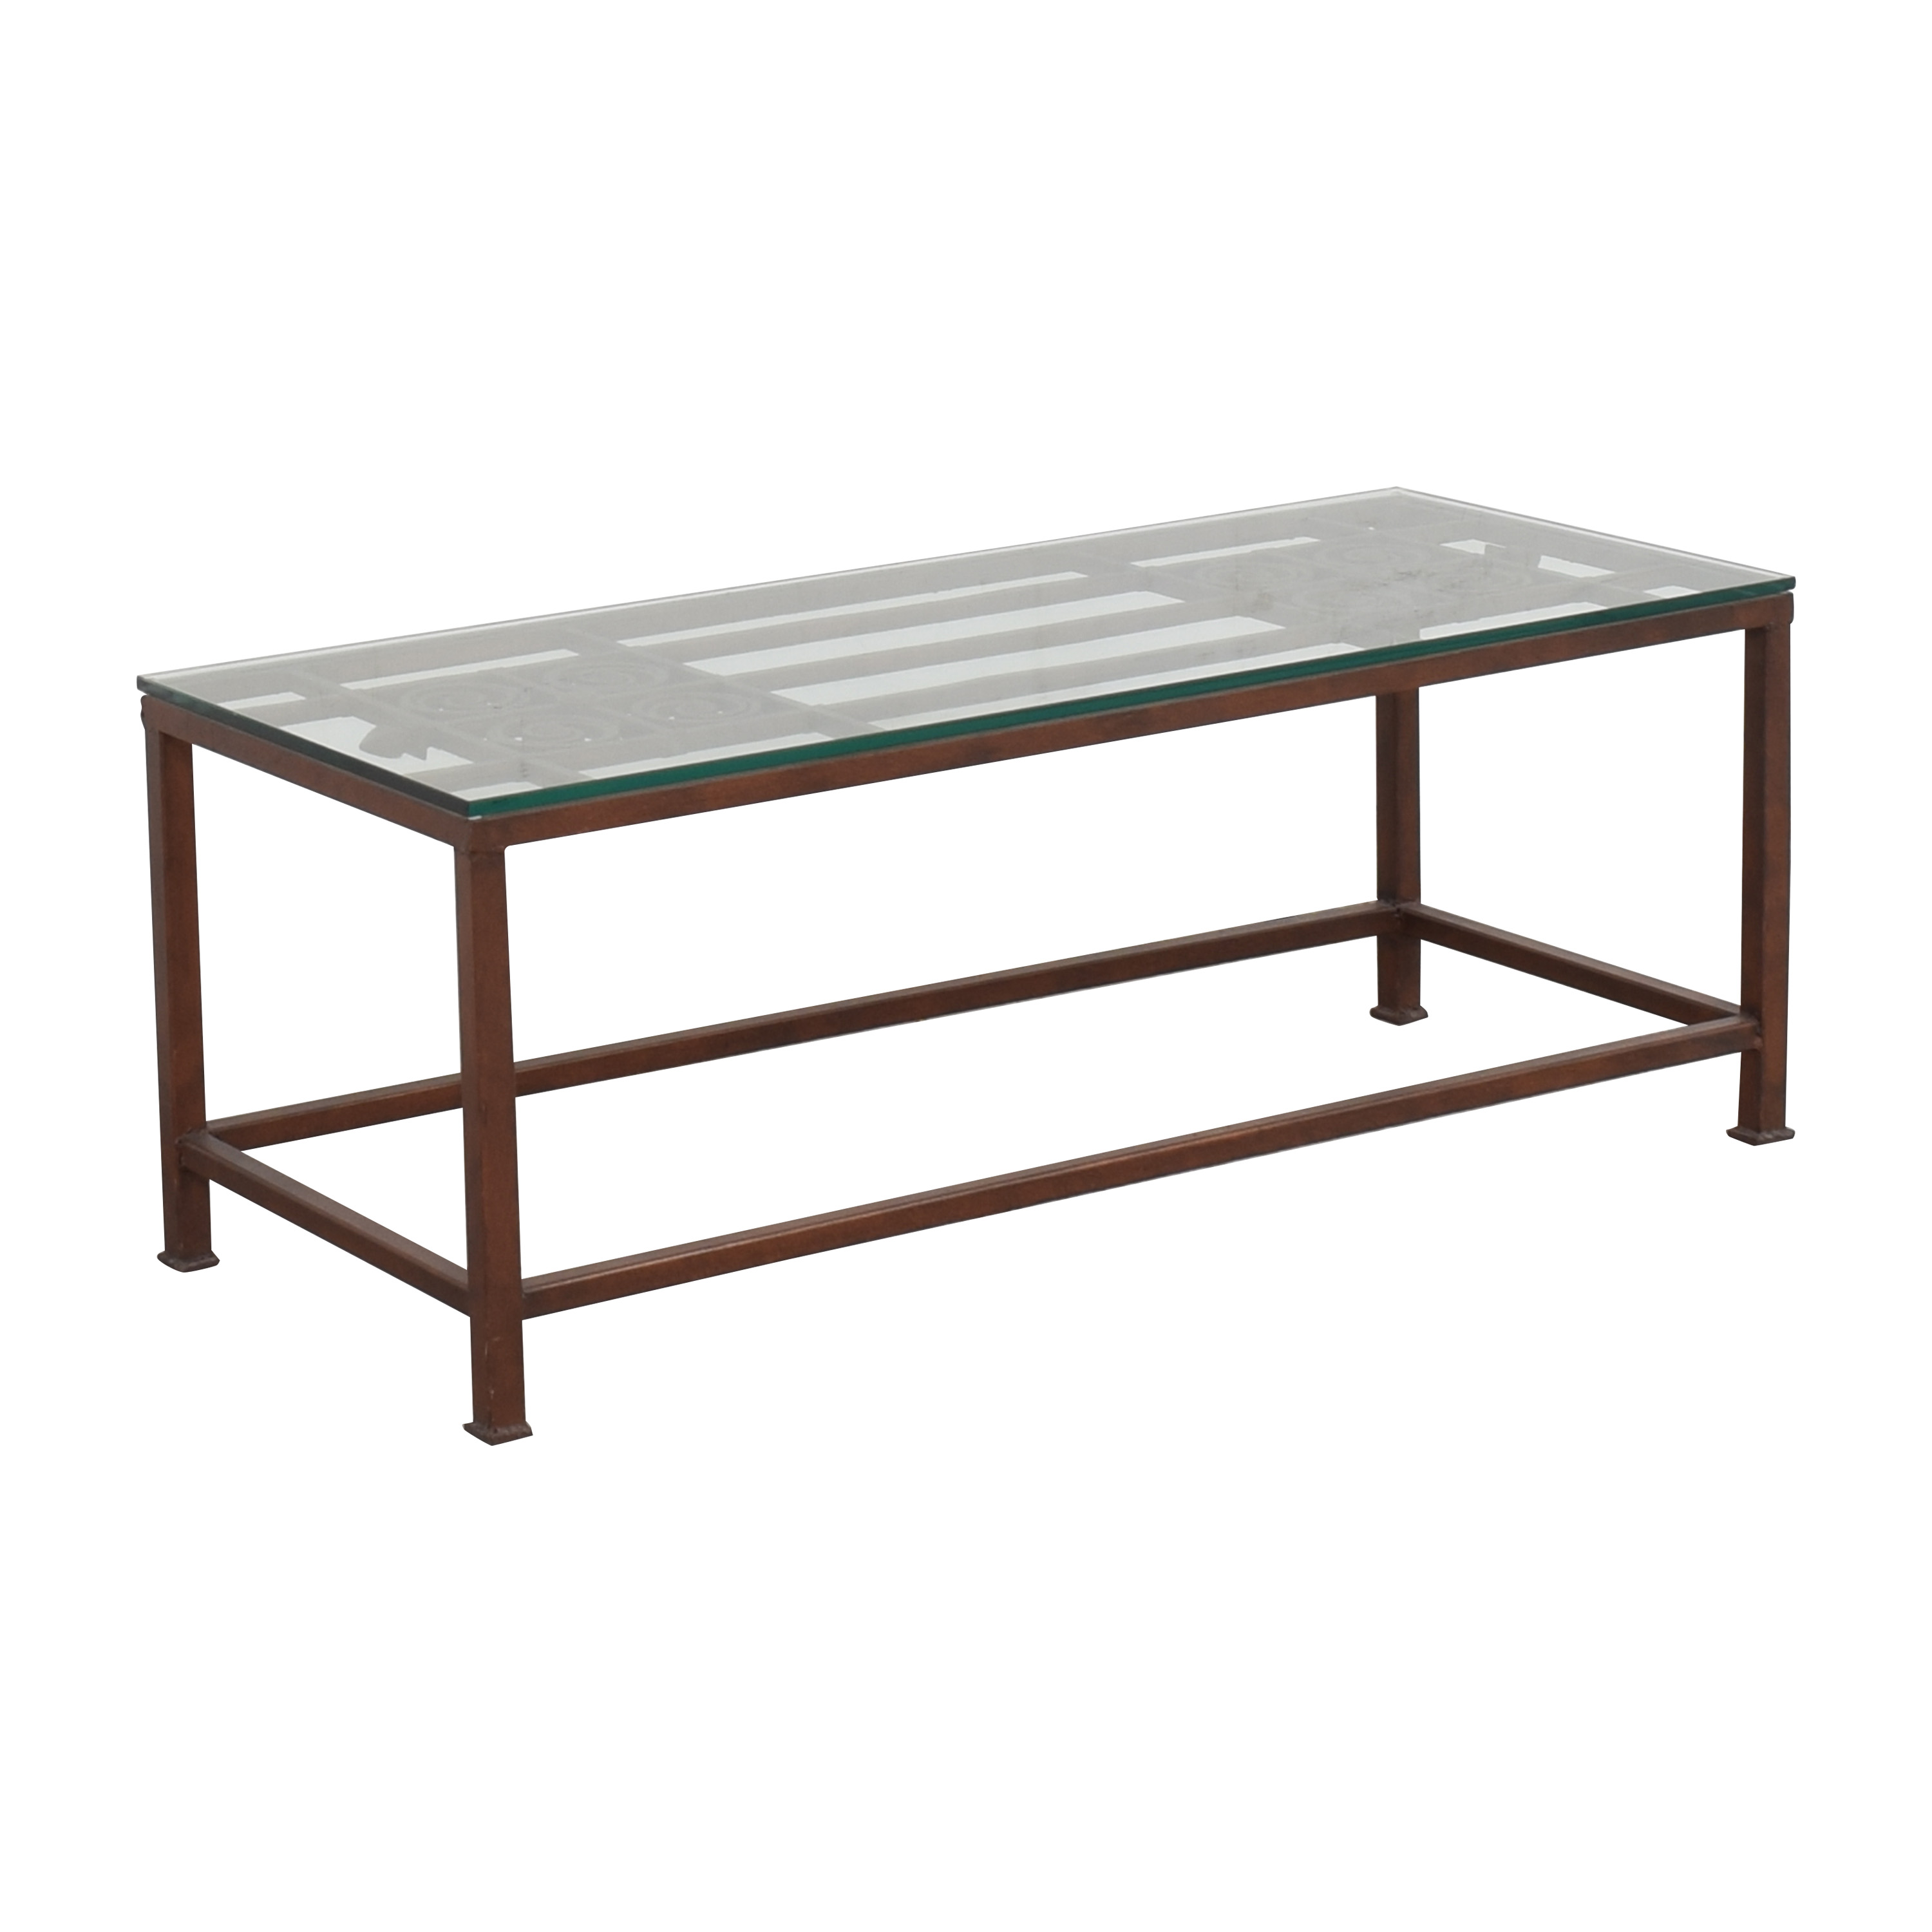 Open Work Coffee Table with Transparent Surface / Coffee Tables